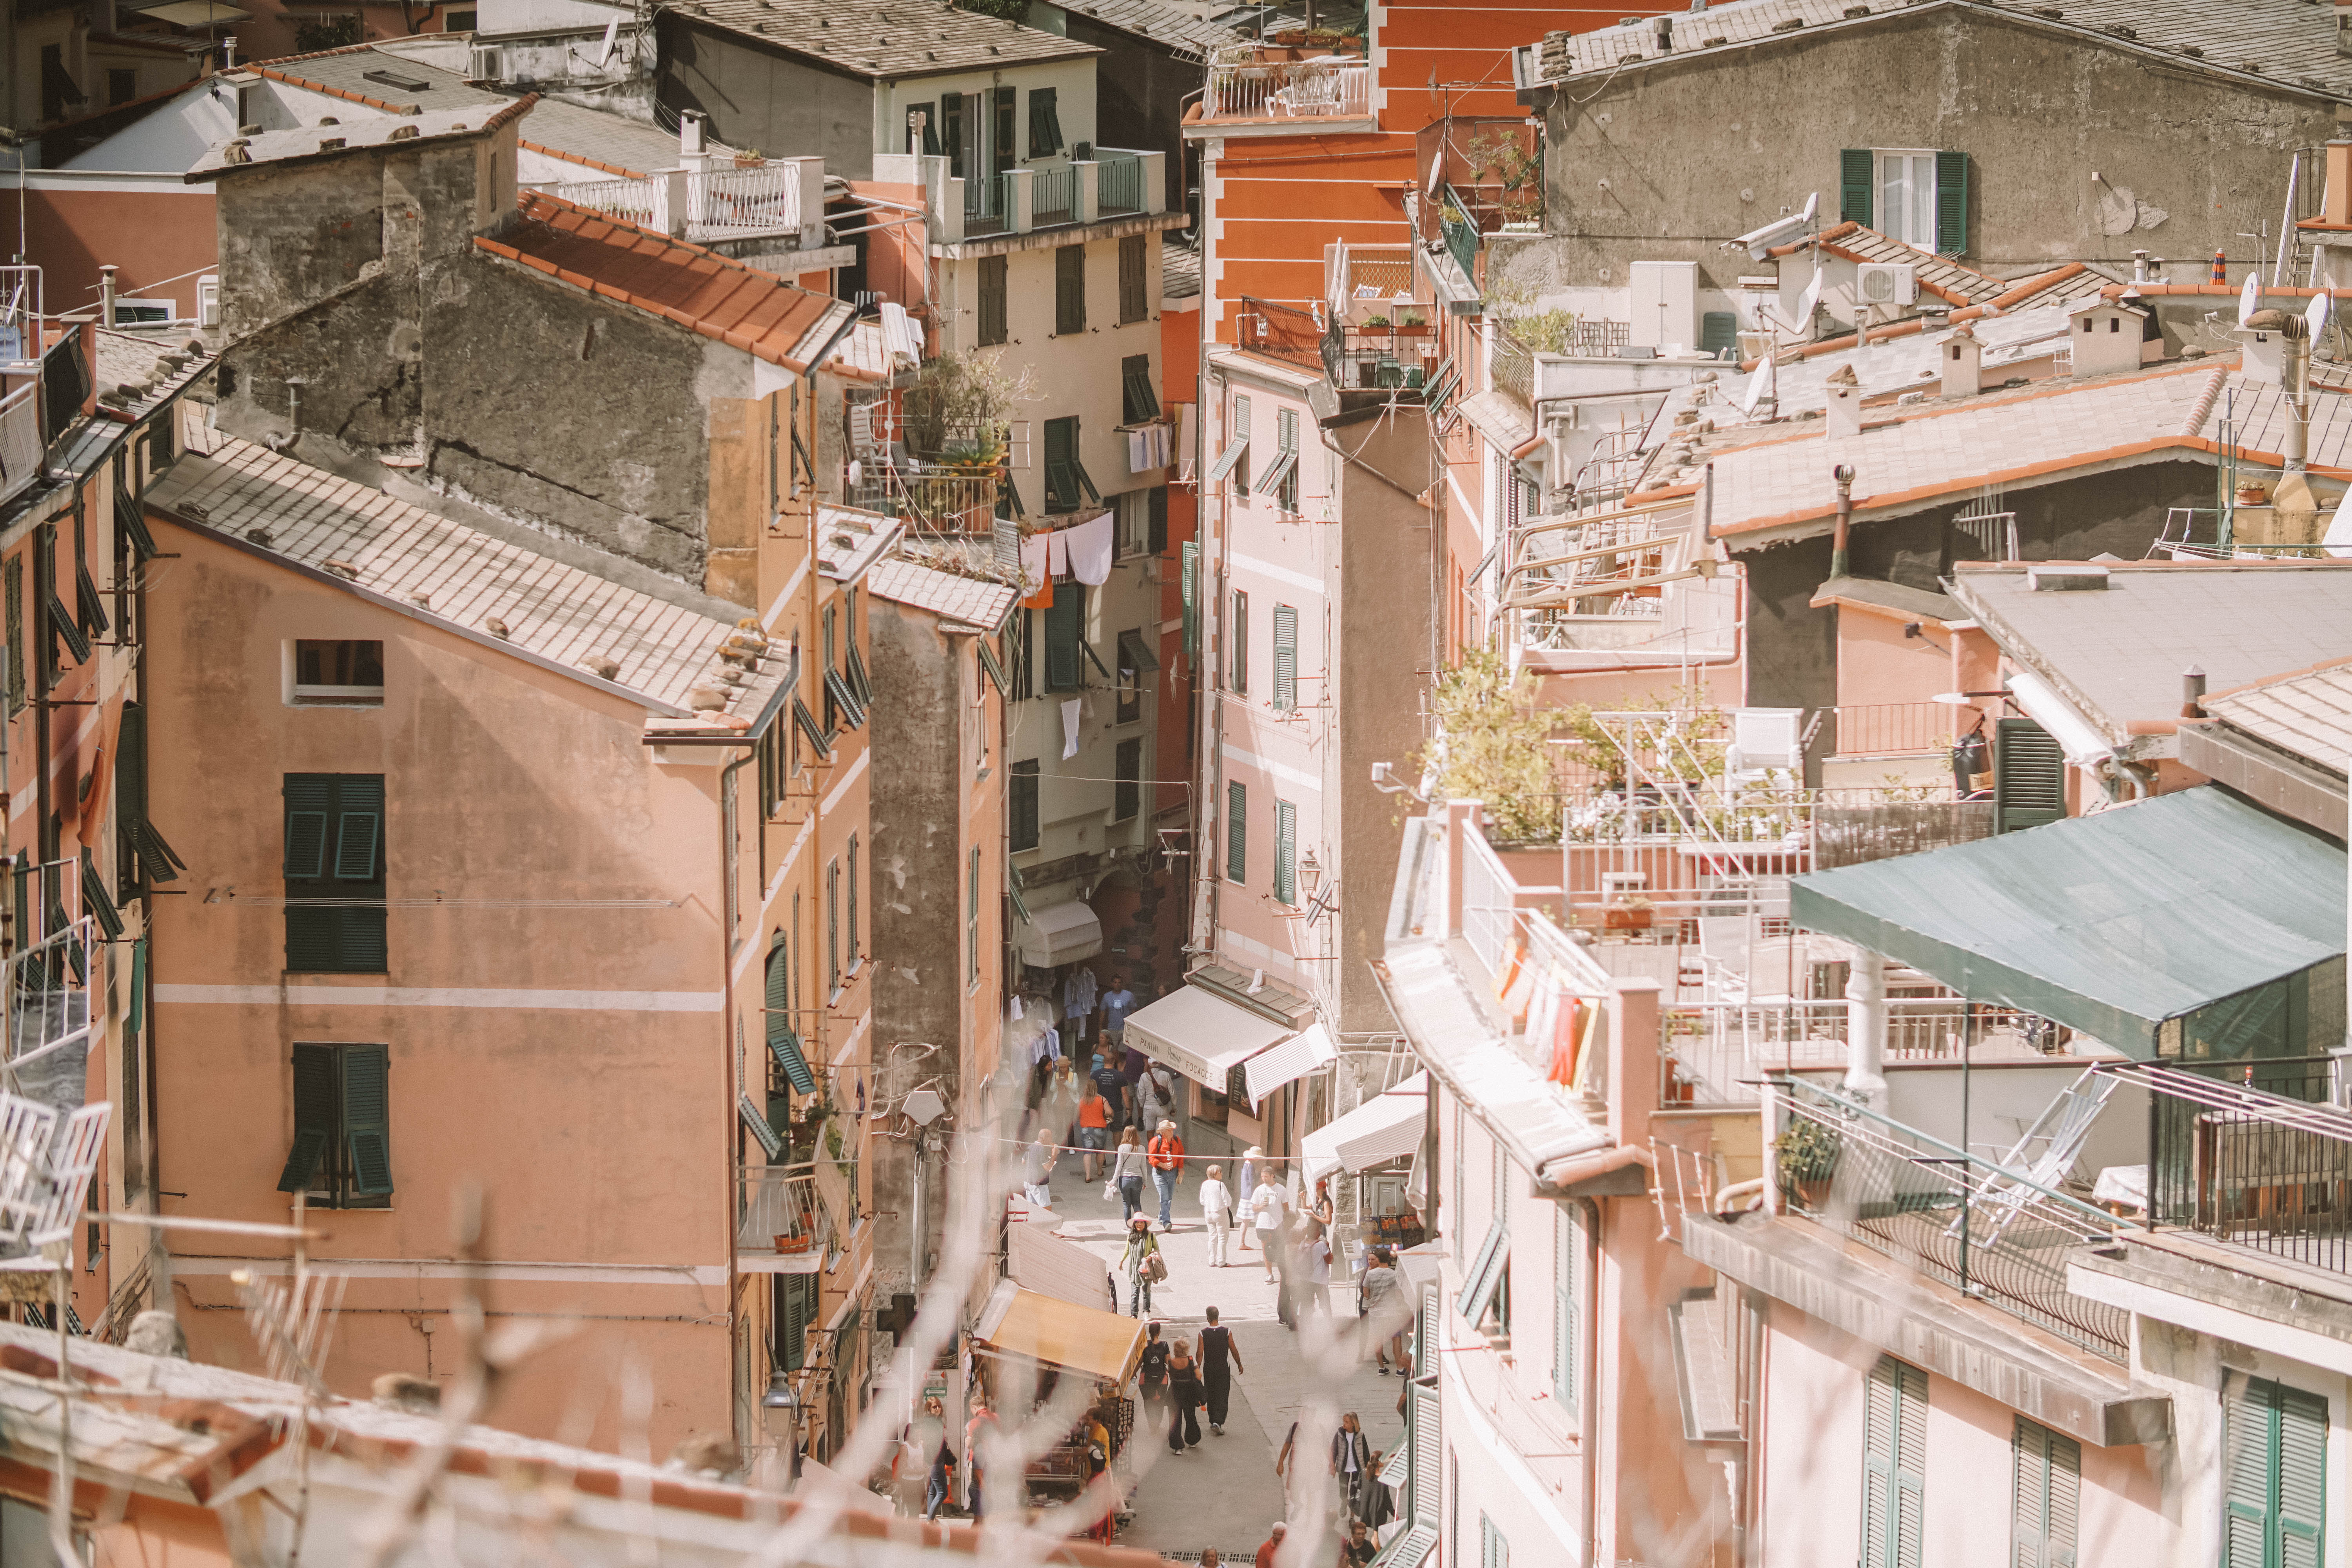 3 Days in Cinque Terre: A travel guide by Intrepid Introvert